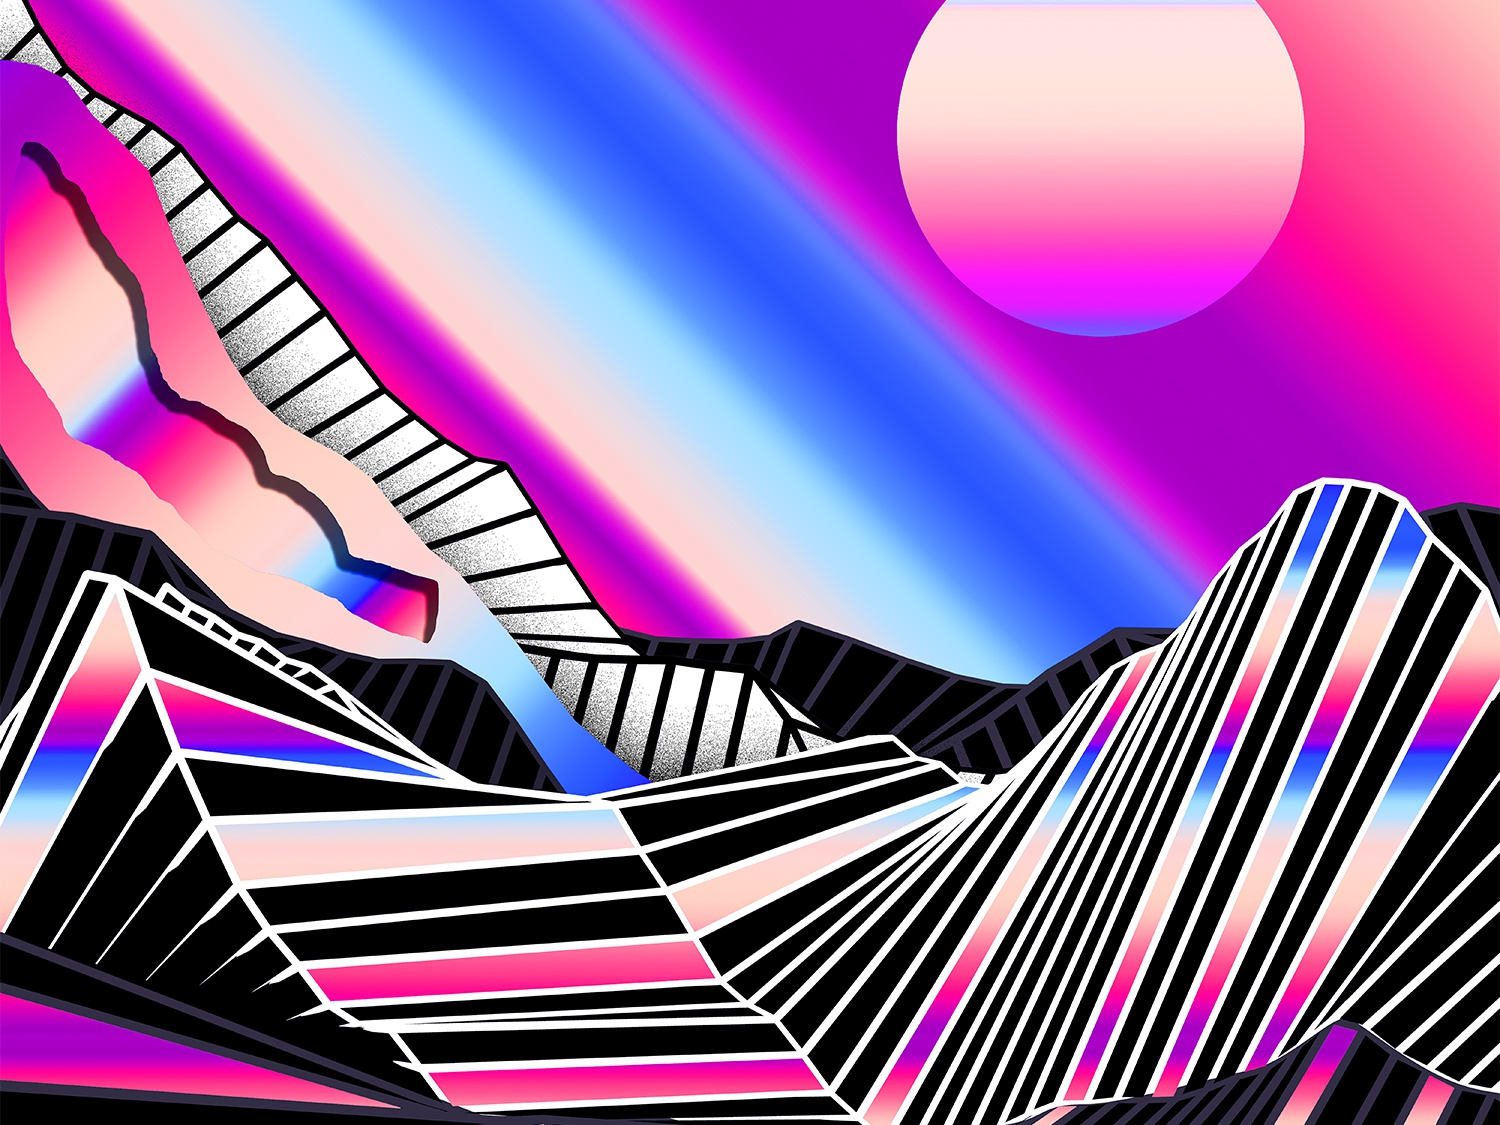 Piano Poster chromatic everydays everyday art cyberpunk abstract art vaporwave poster art artwork iridescent poster colorful klarens cinema4dart low poly geometric sun gradient abstract retro 3d